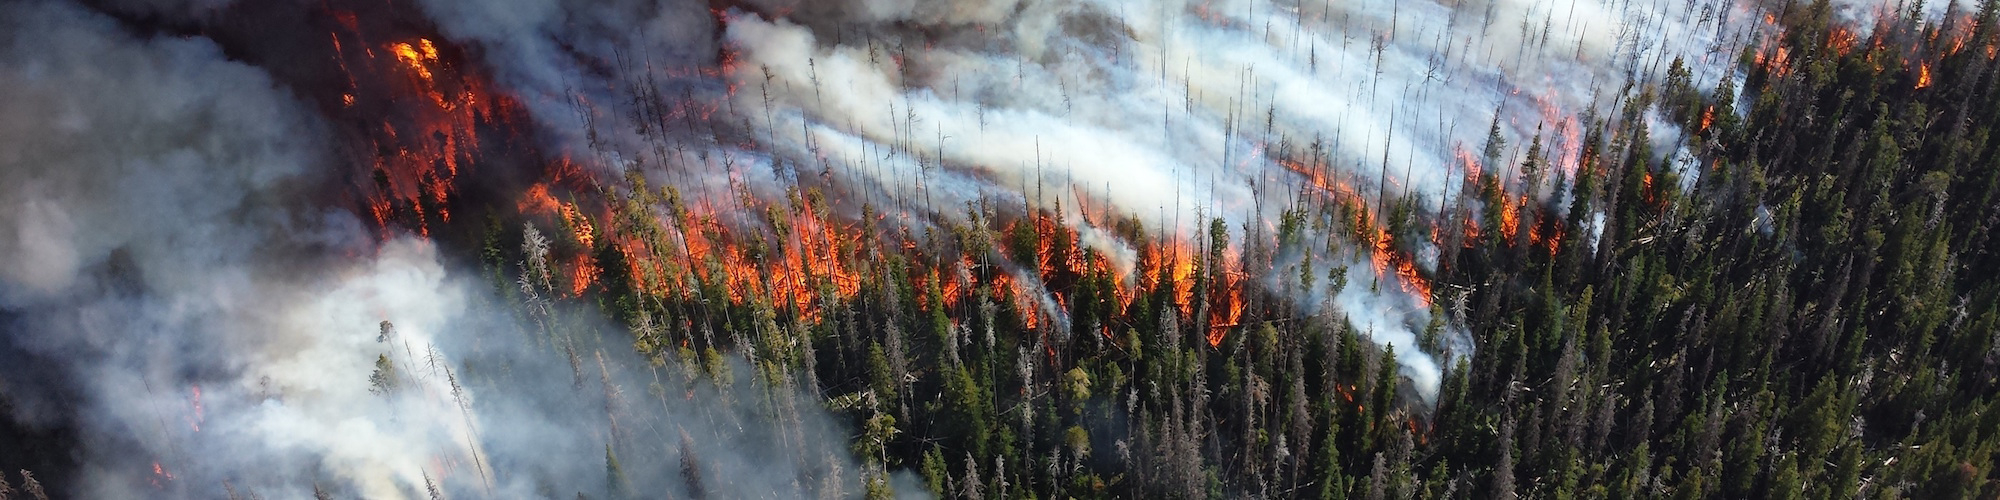 Forest Fire Image